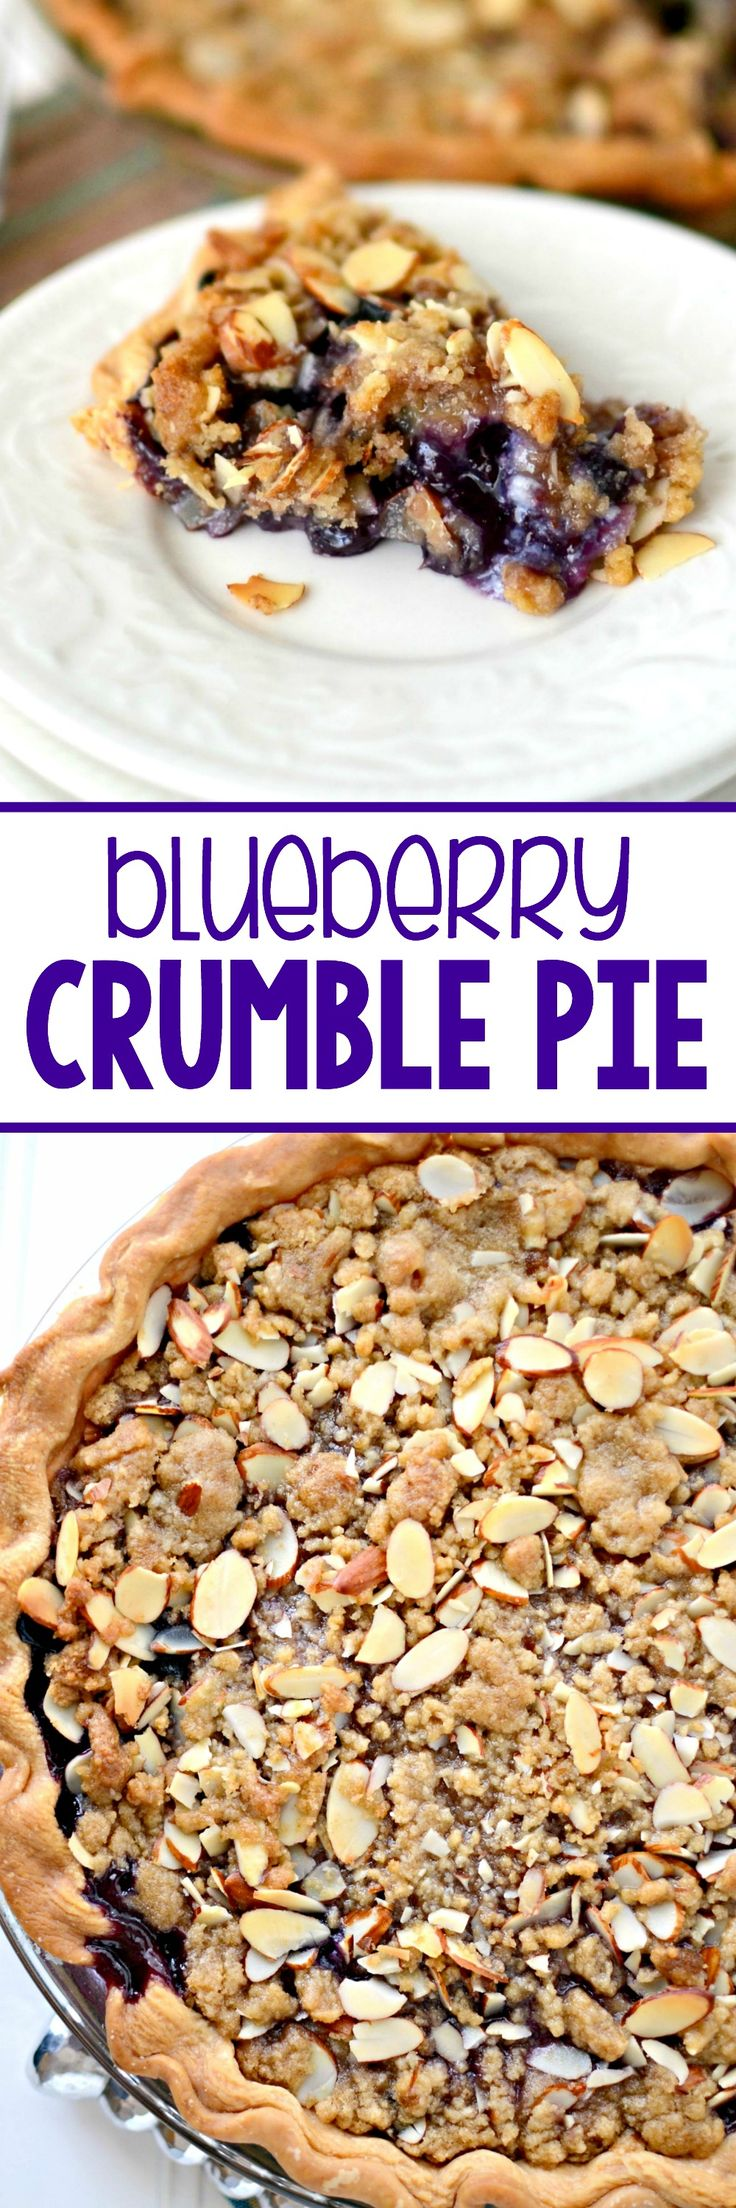 Blueberry Crumble Pie - one of the best pies ever! A fresh blueberry filling topped with a almond crumble topping. This is the perfect berry pie recipe.